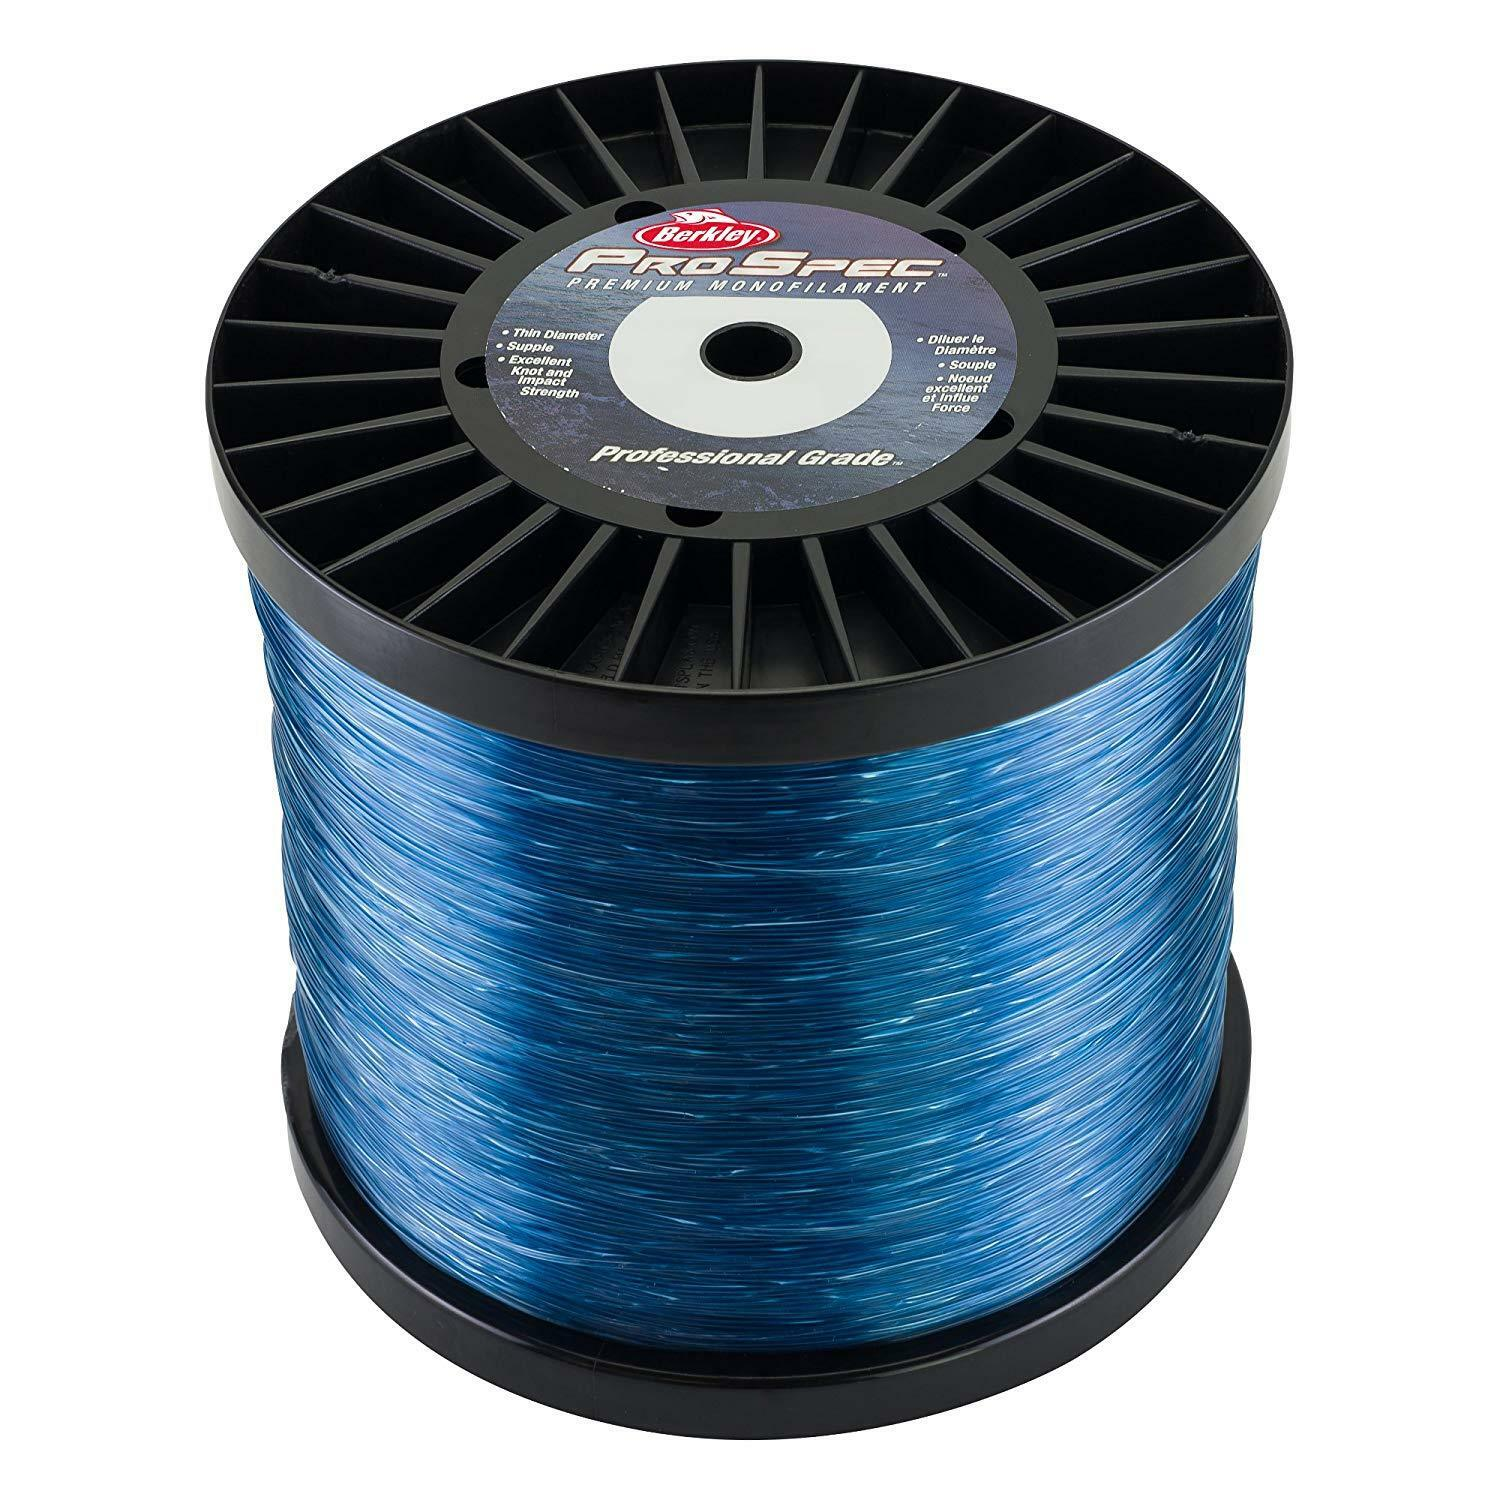 Berkley Pro Spec 30LB test Ocean bluee 8600 yds Big Game 5Spool